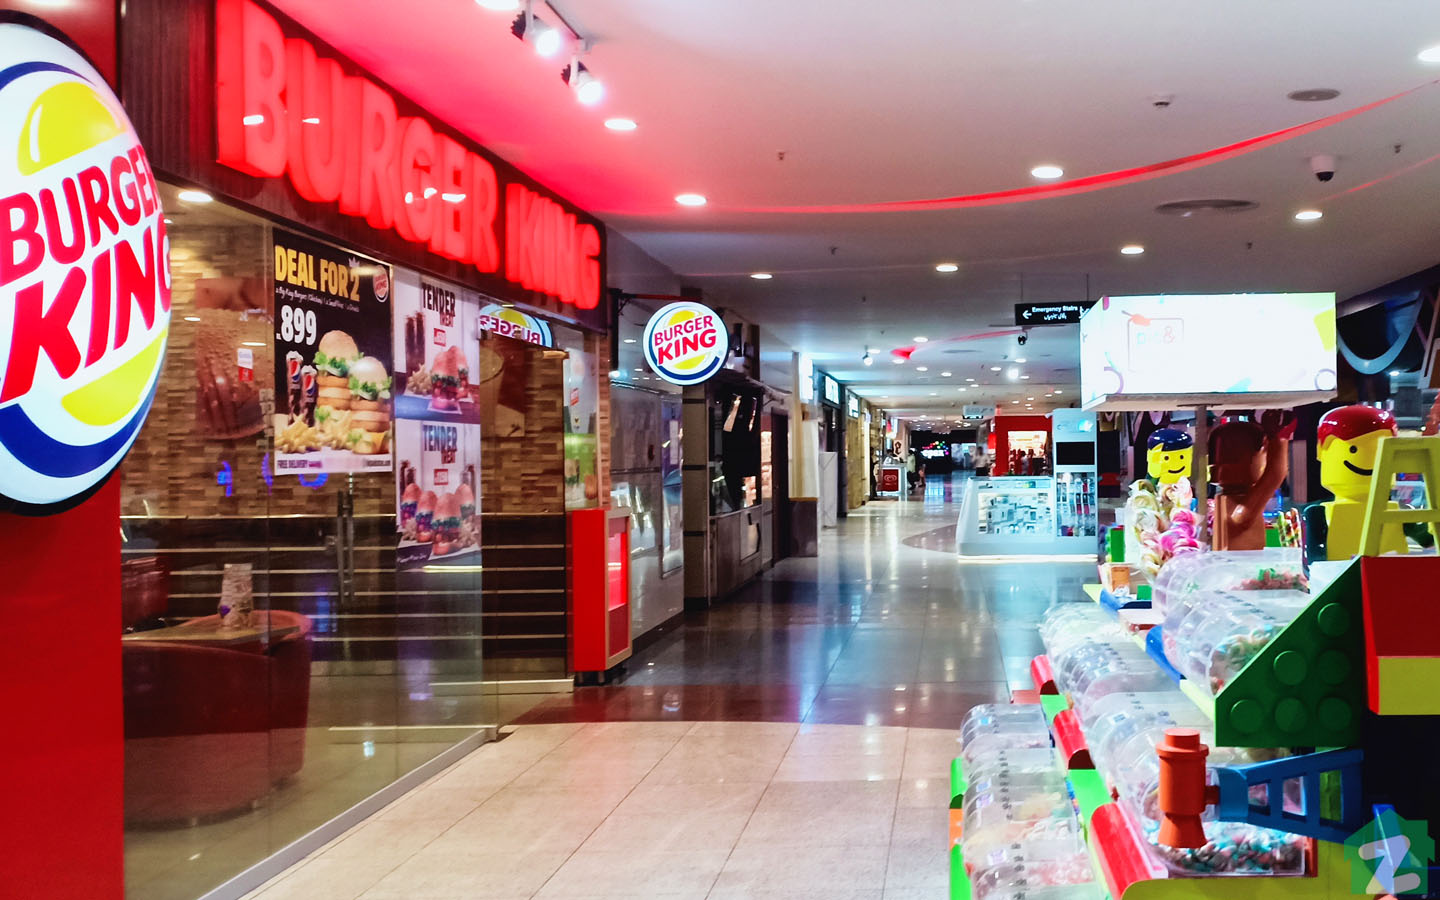 Giga mall also boasts a food court